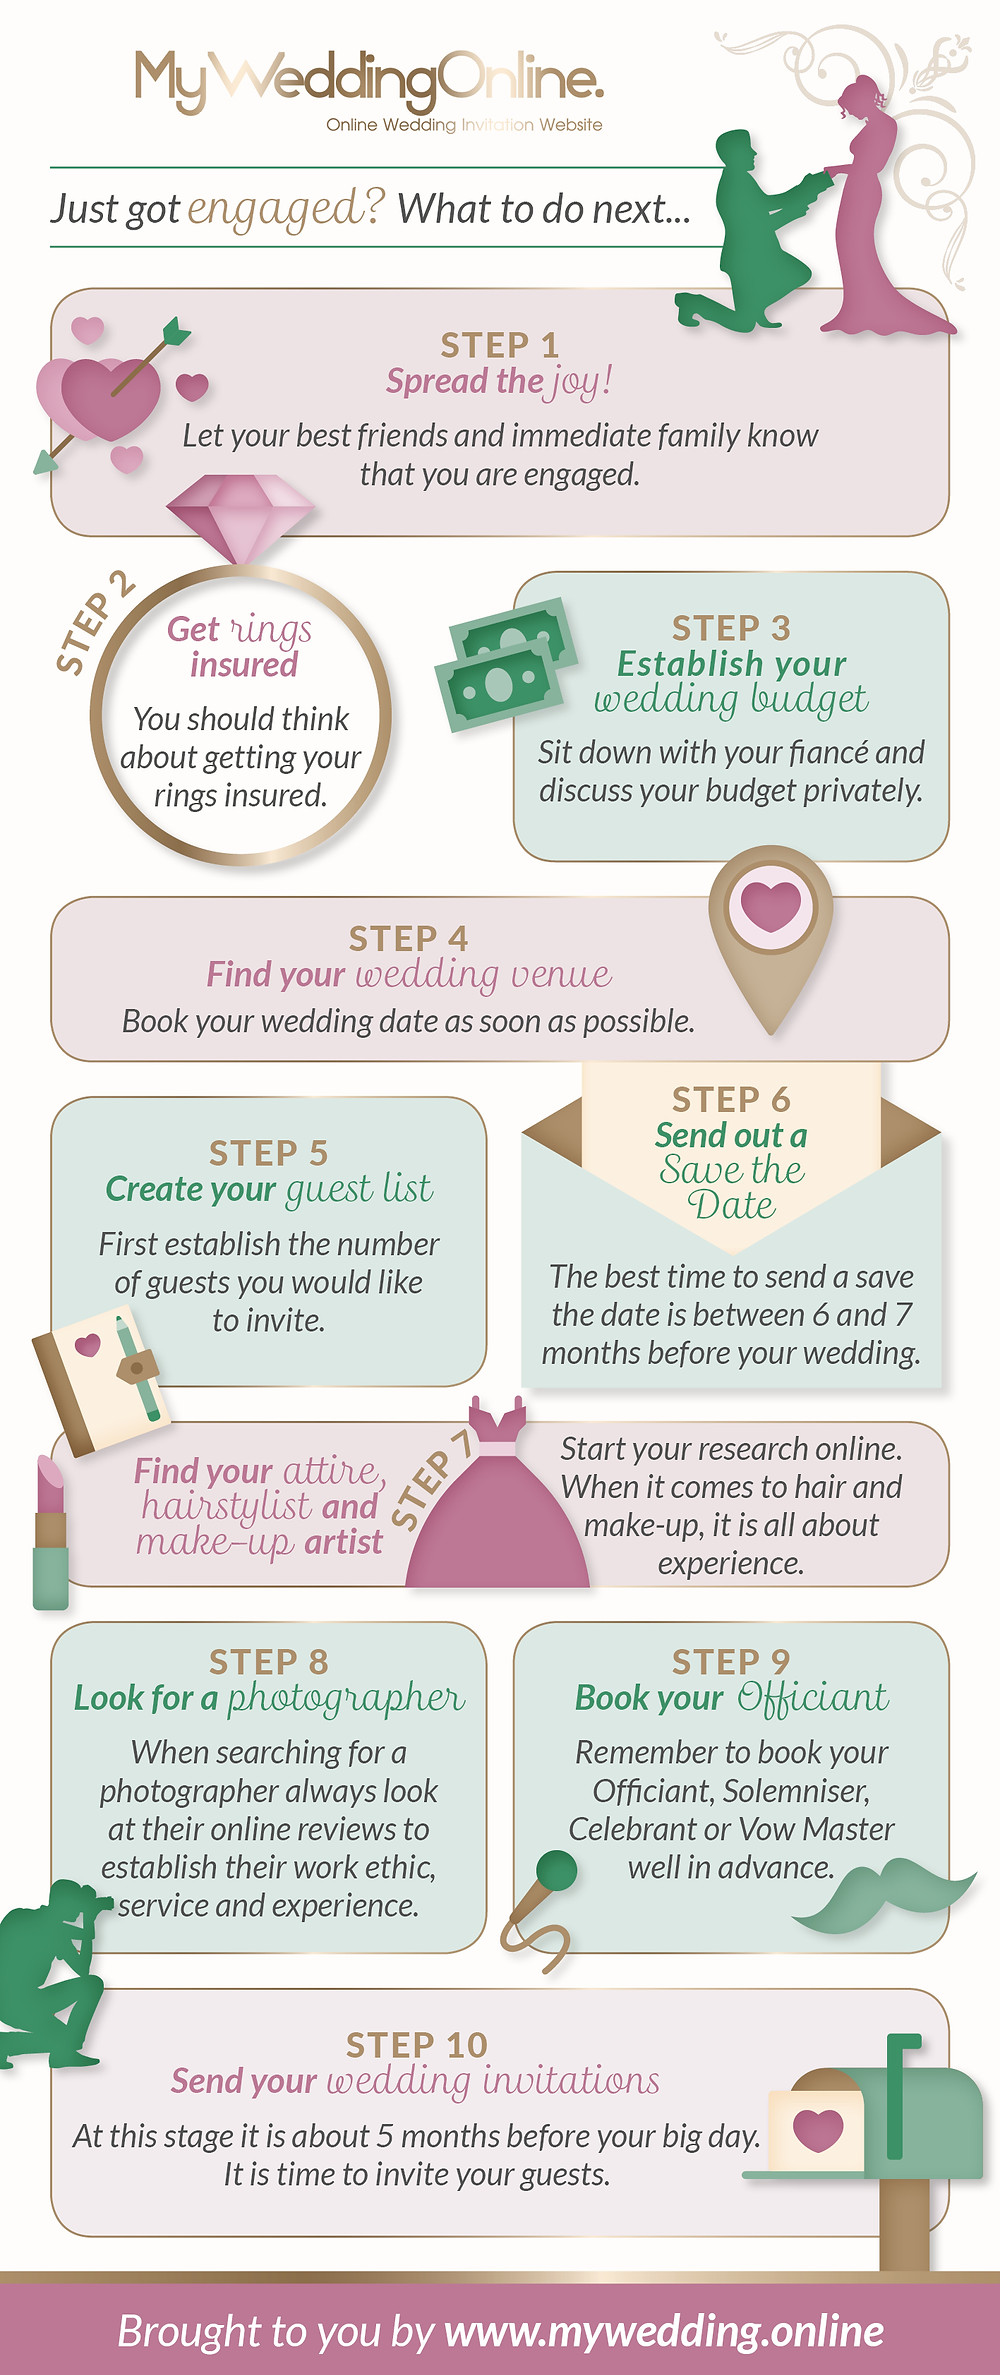 What to do when you just got engaged